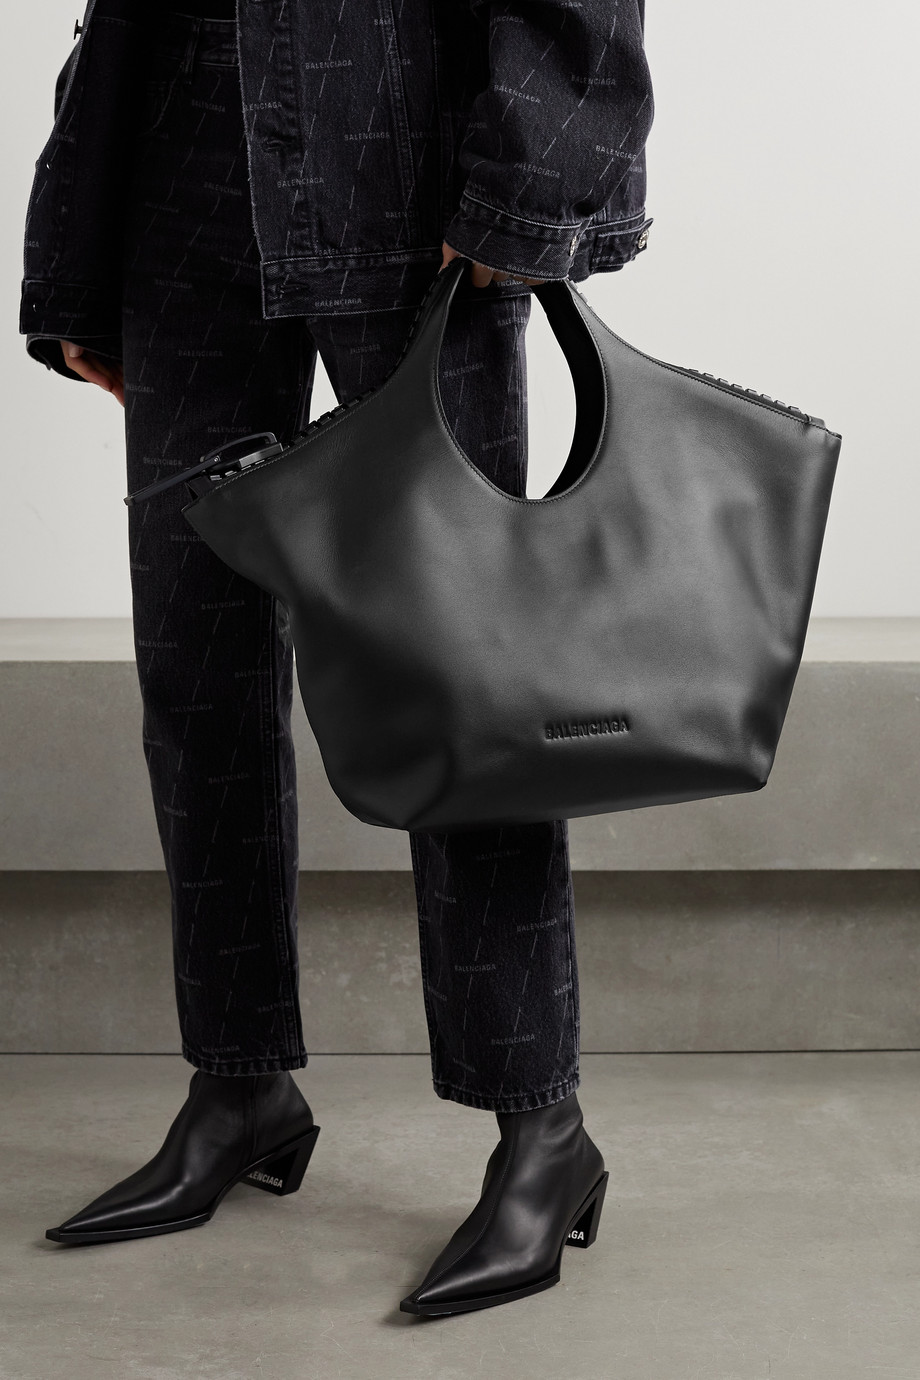 Balenciaga Megazip medium leather tote